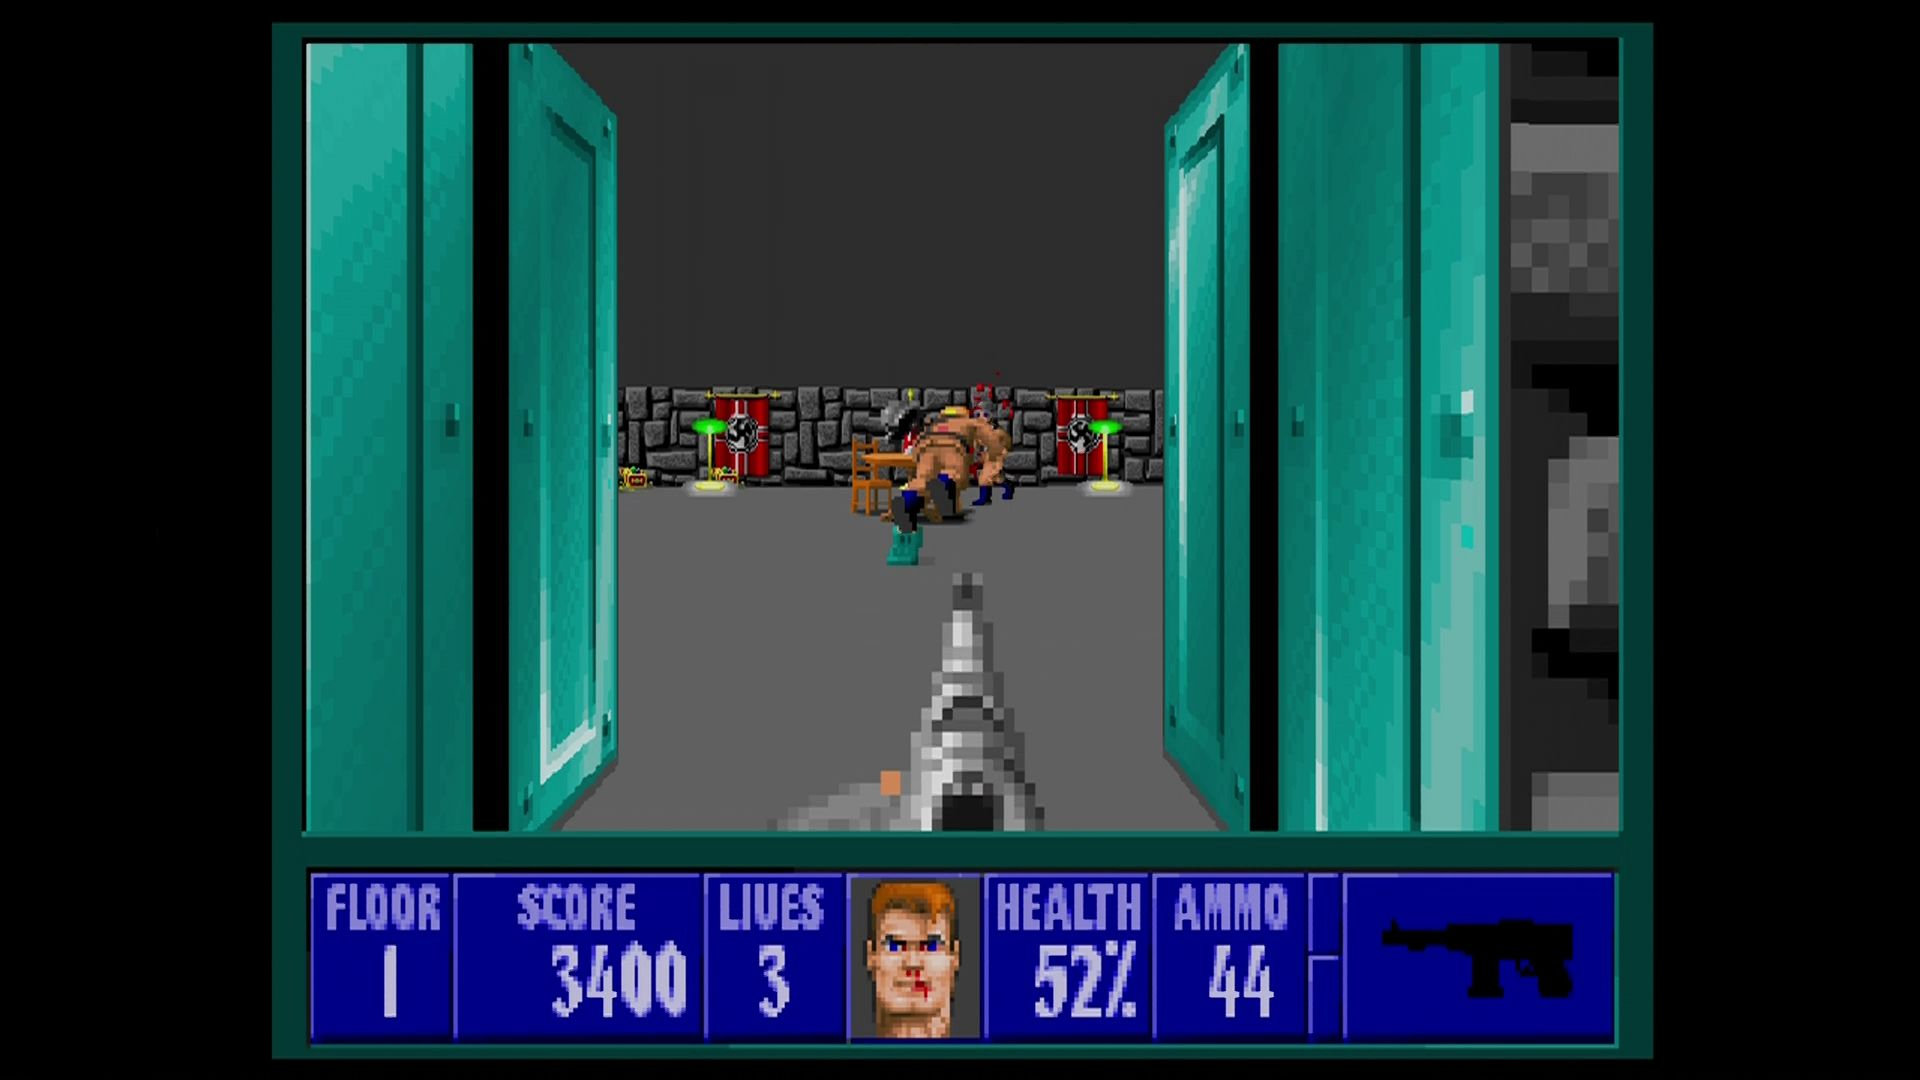 Wolfenstein 3D Xbox 360 The results are too good to have simply scaled the original art. But any redrawing is subtle.